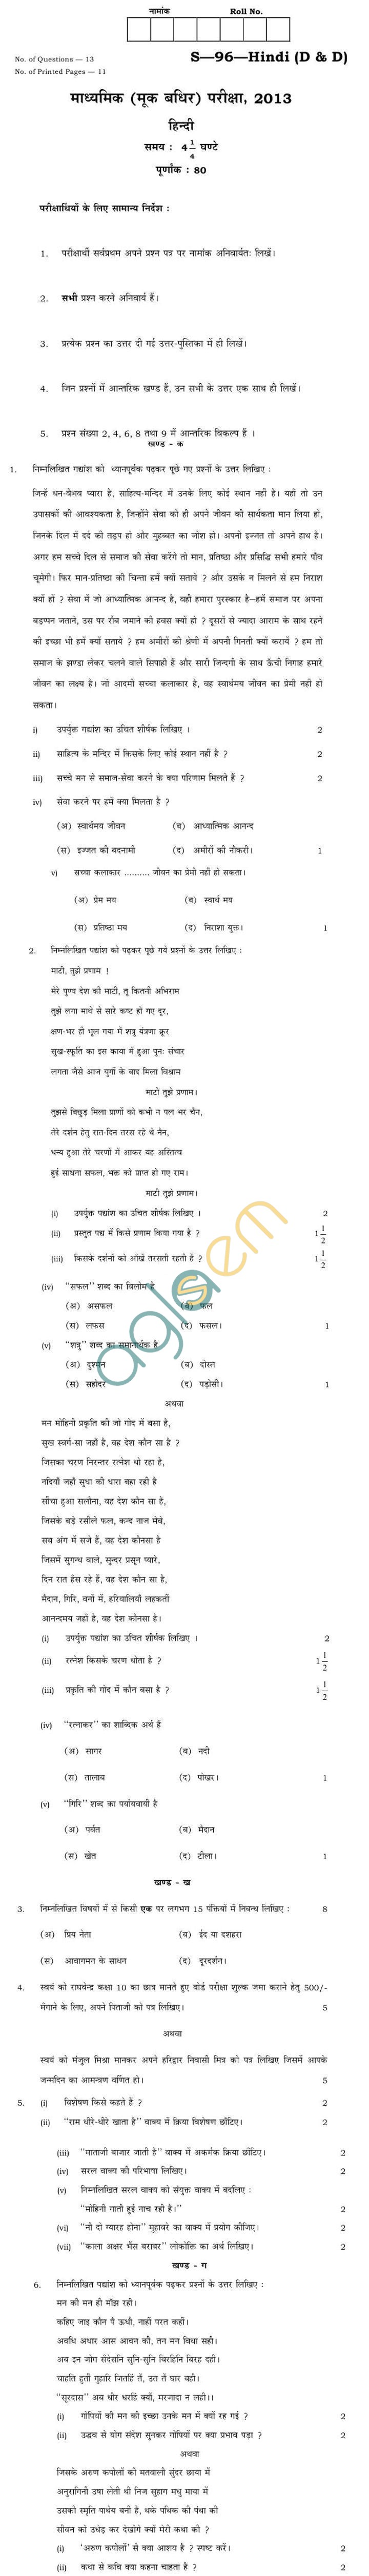 Rajasthan Board Secondary Hindi (DD) Question Paper 2013